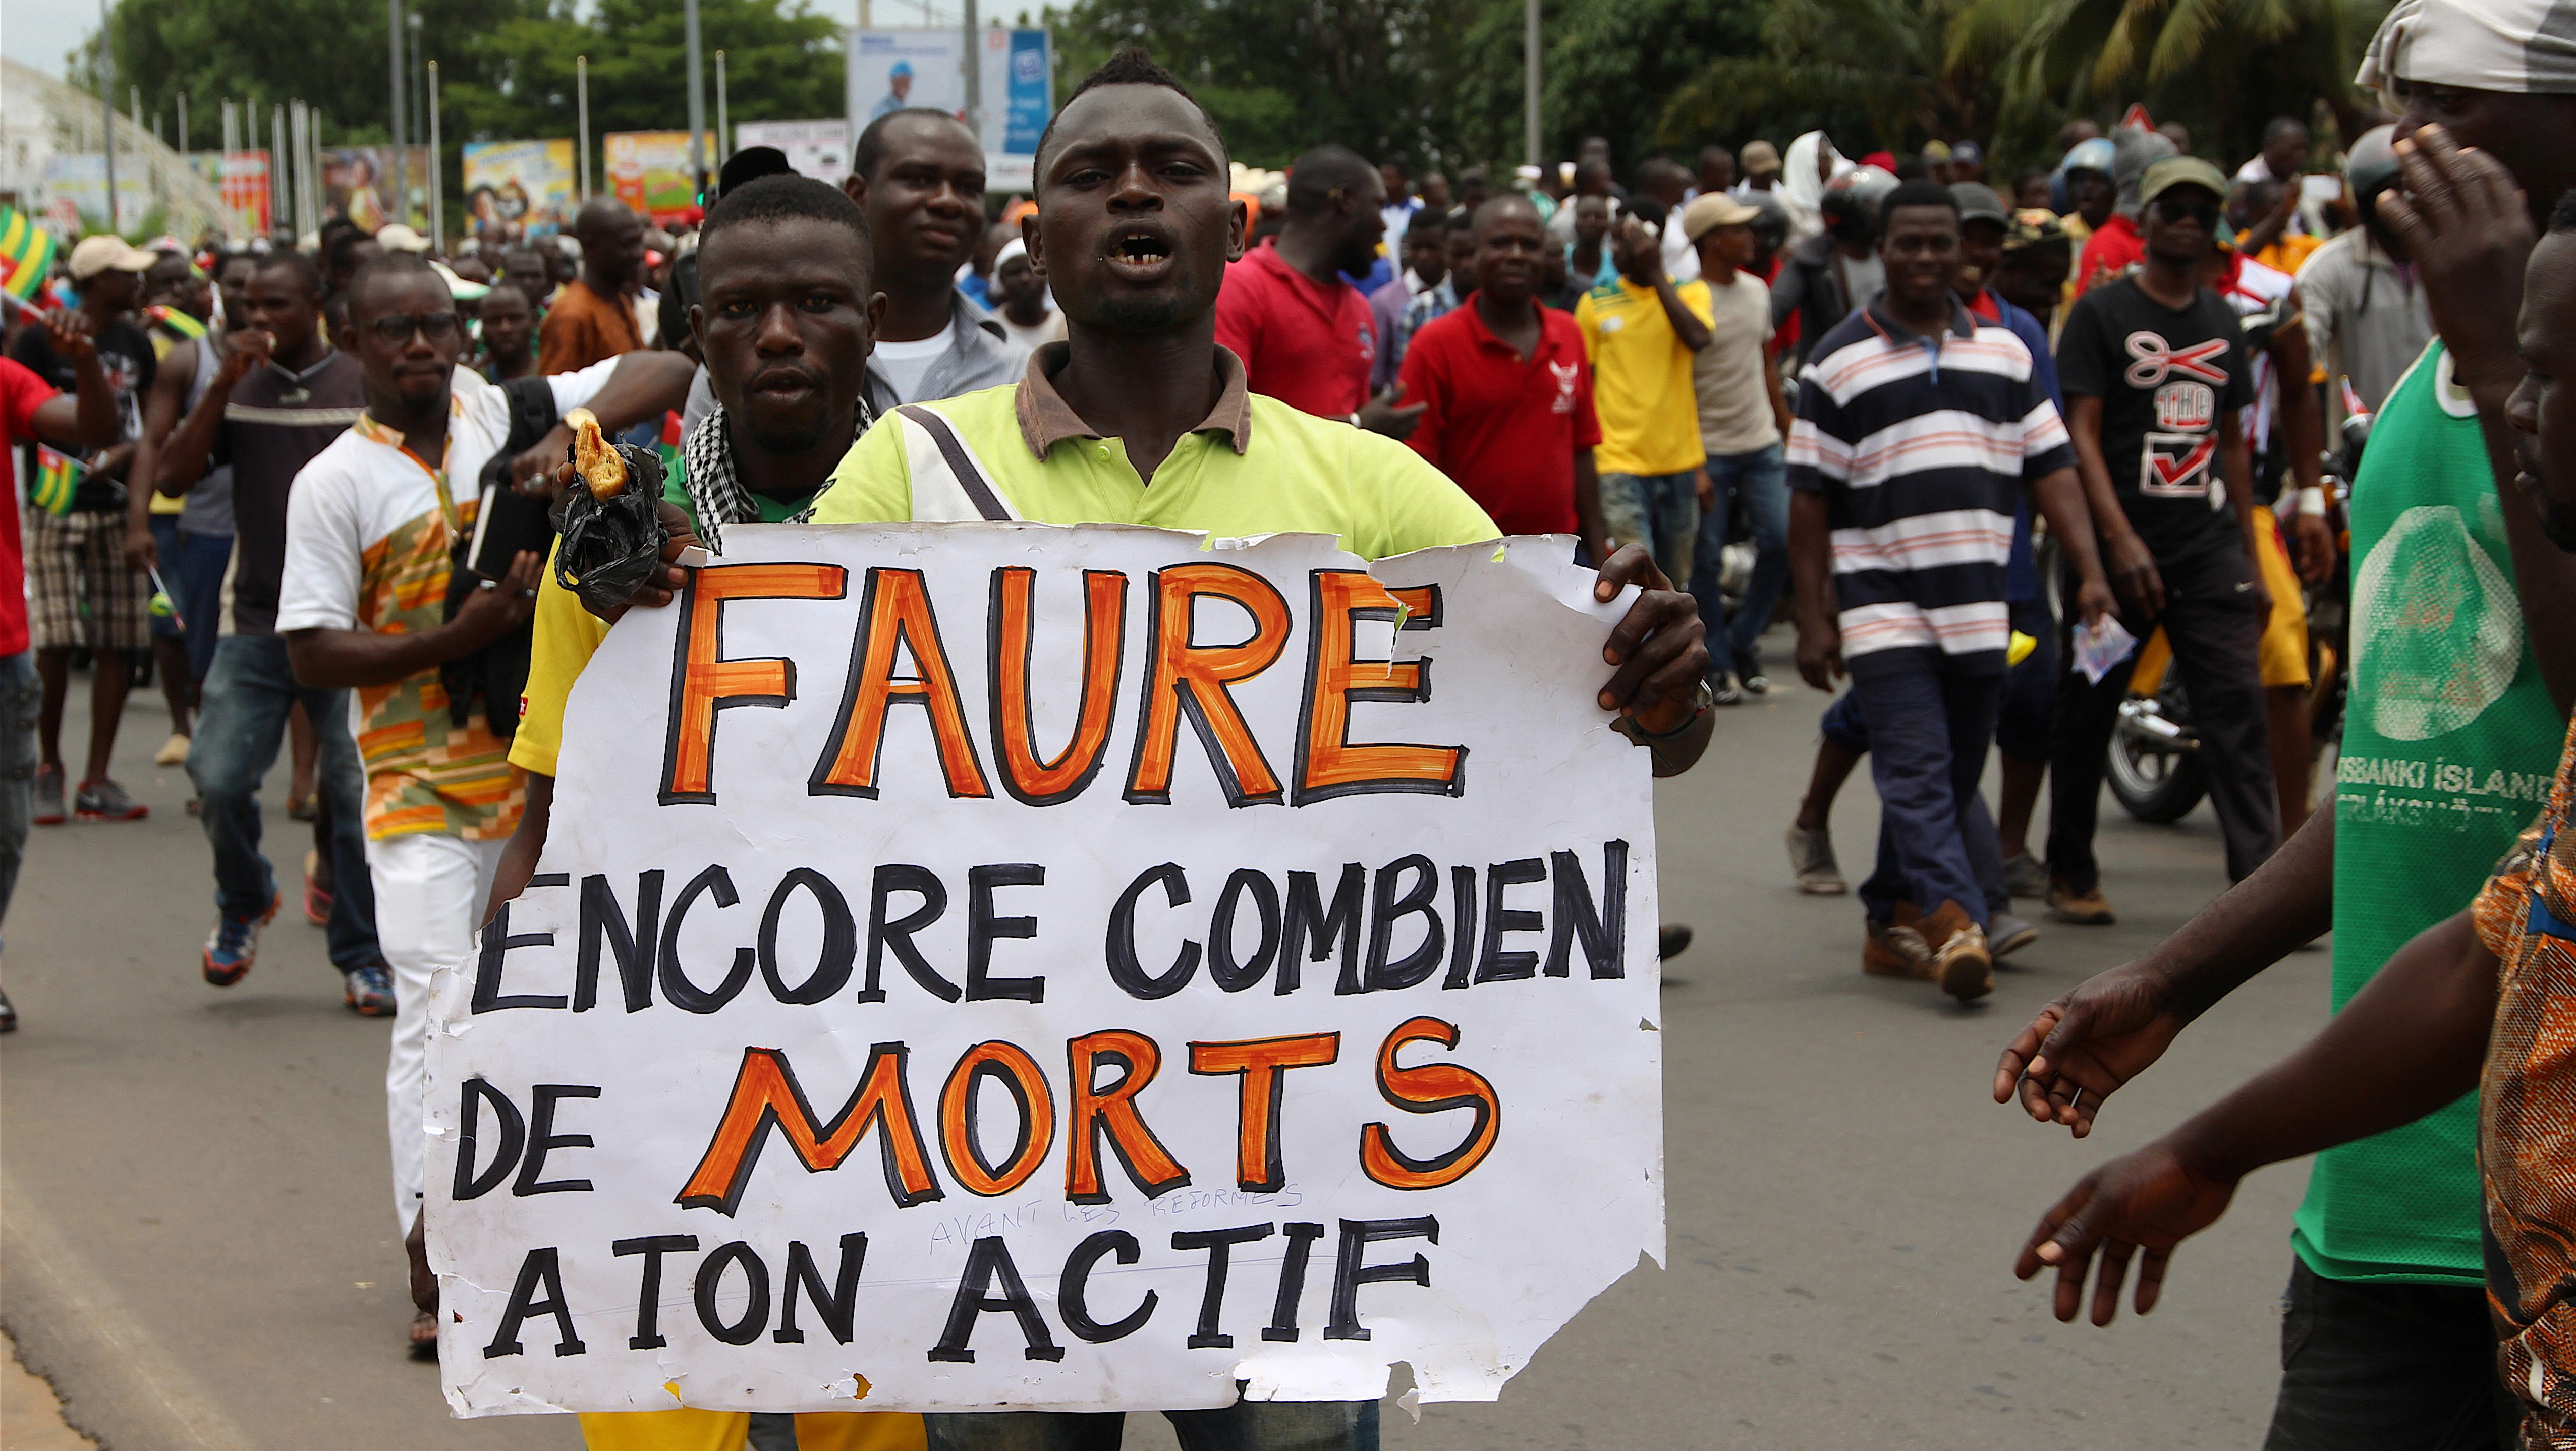 """A man holds up a sign, which reads: """"Faure still how many death by you"""", during an opposition protest calling for the immediate resignation of President Faure Gnassingbe in Lome, Togo, September 6, 2017."""